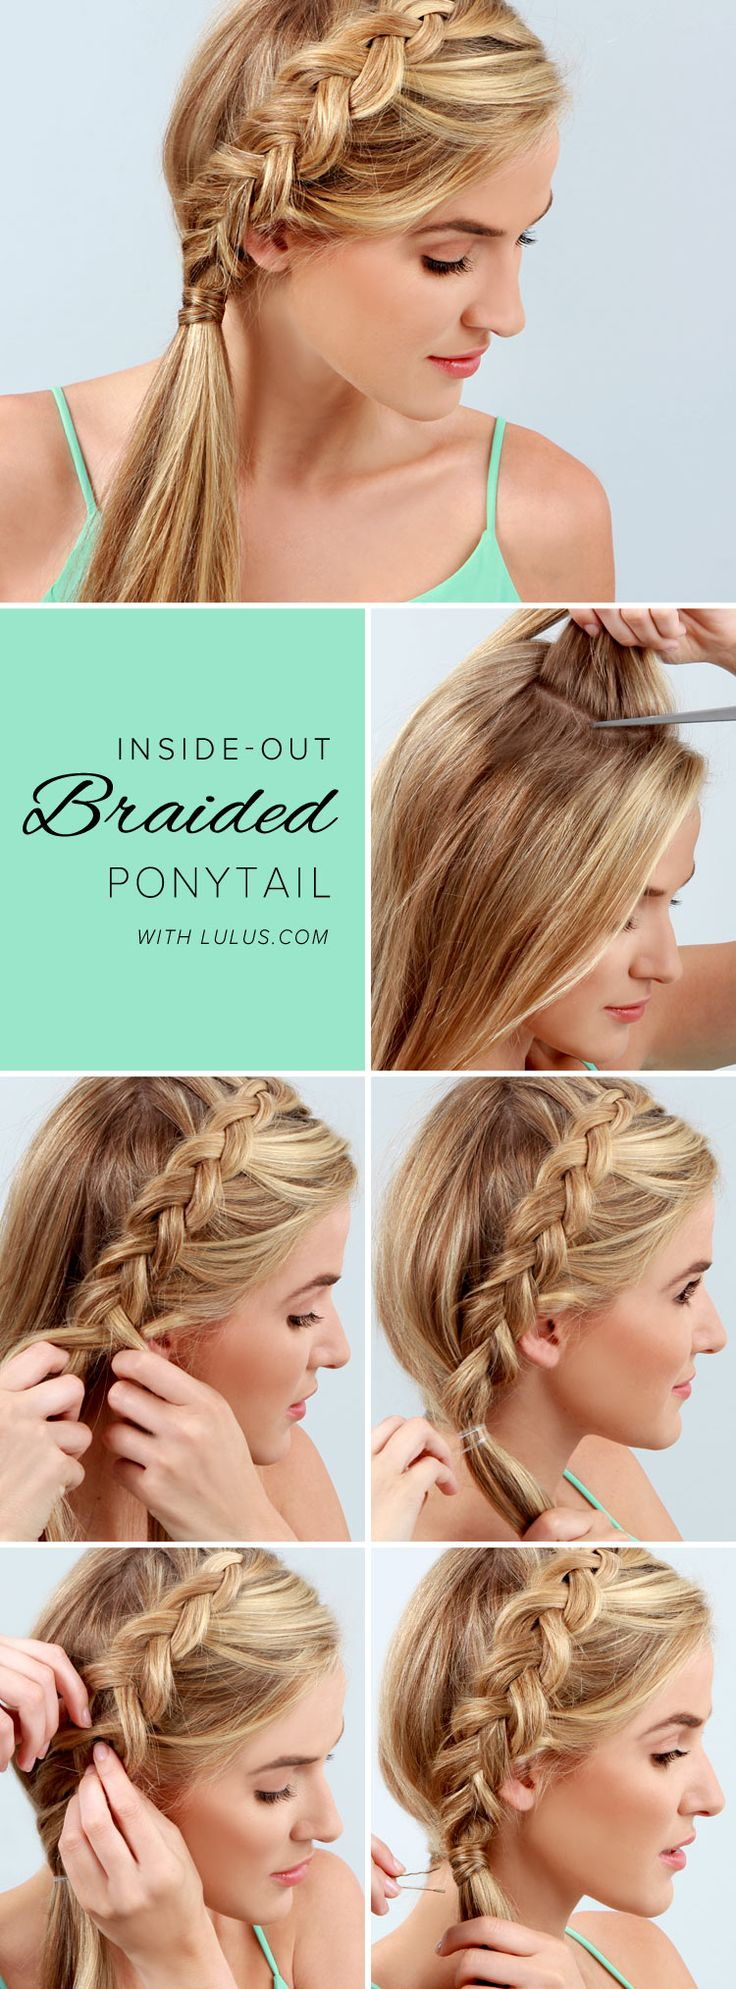 Inside-Out Braided Ponytail Tutorial